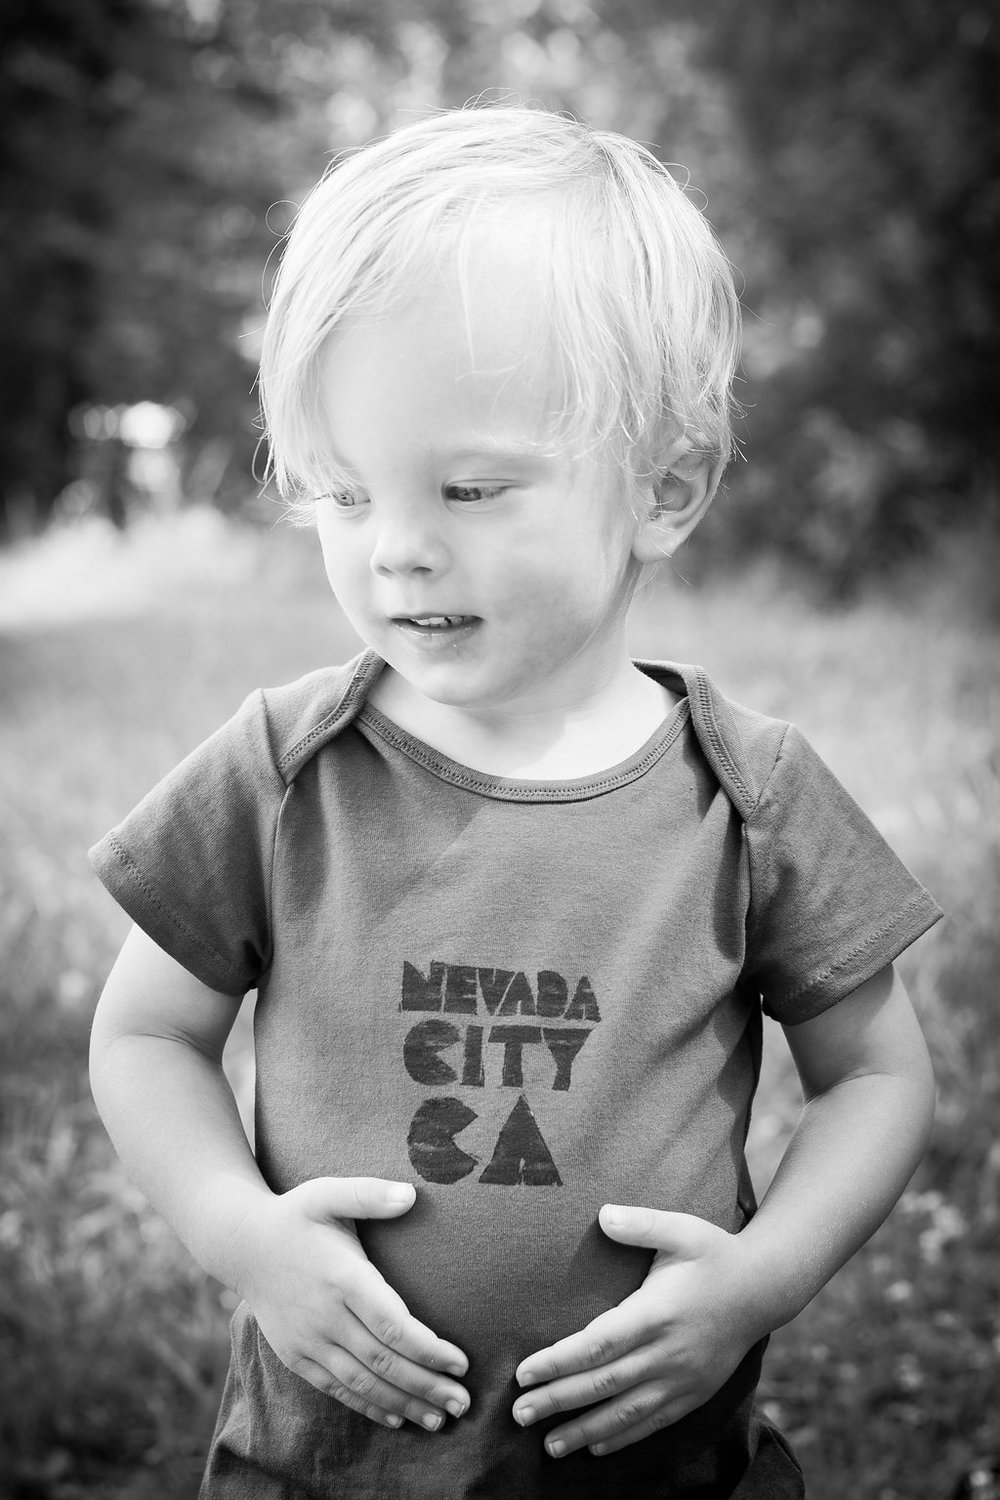 Nevada City T-Shirt